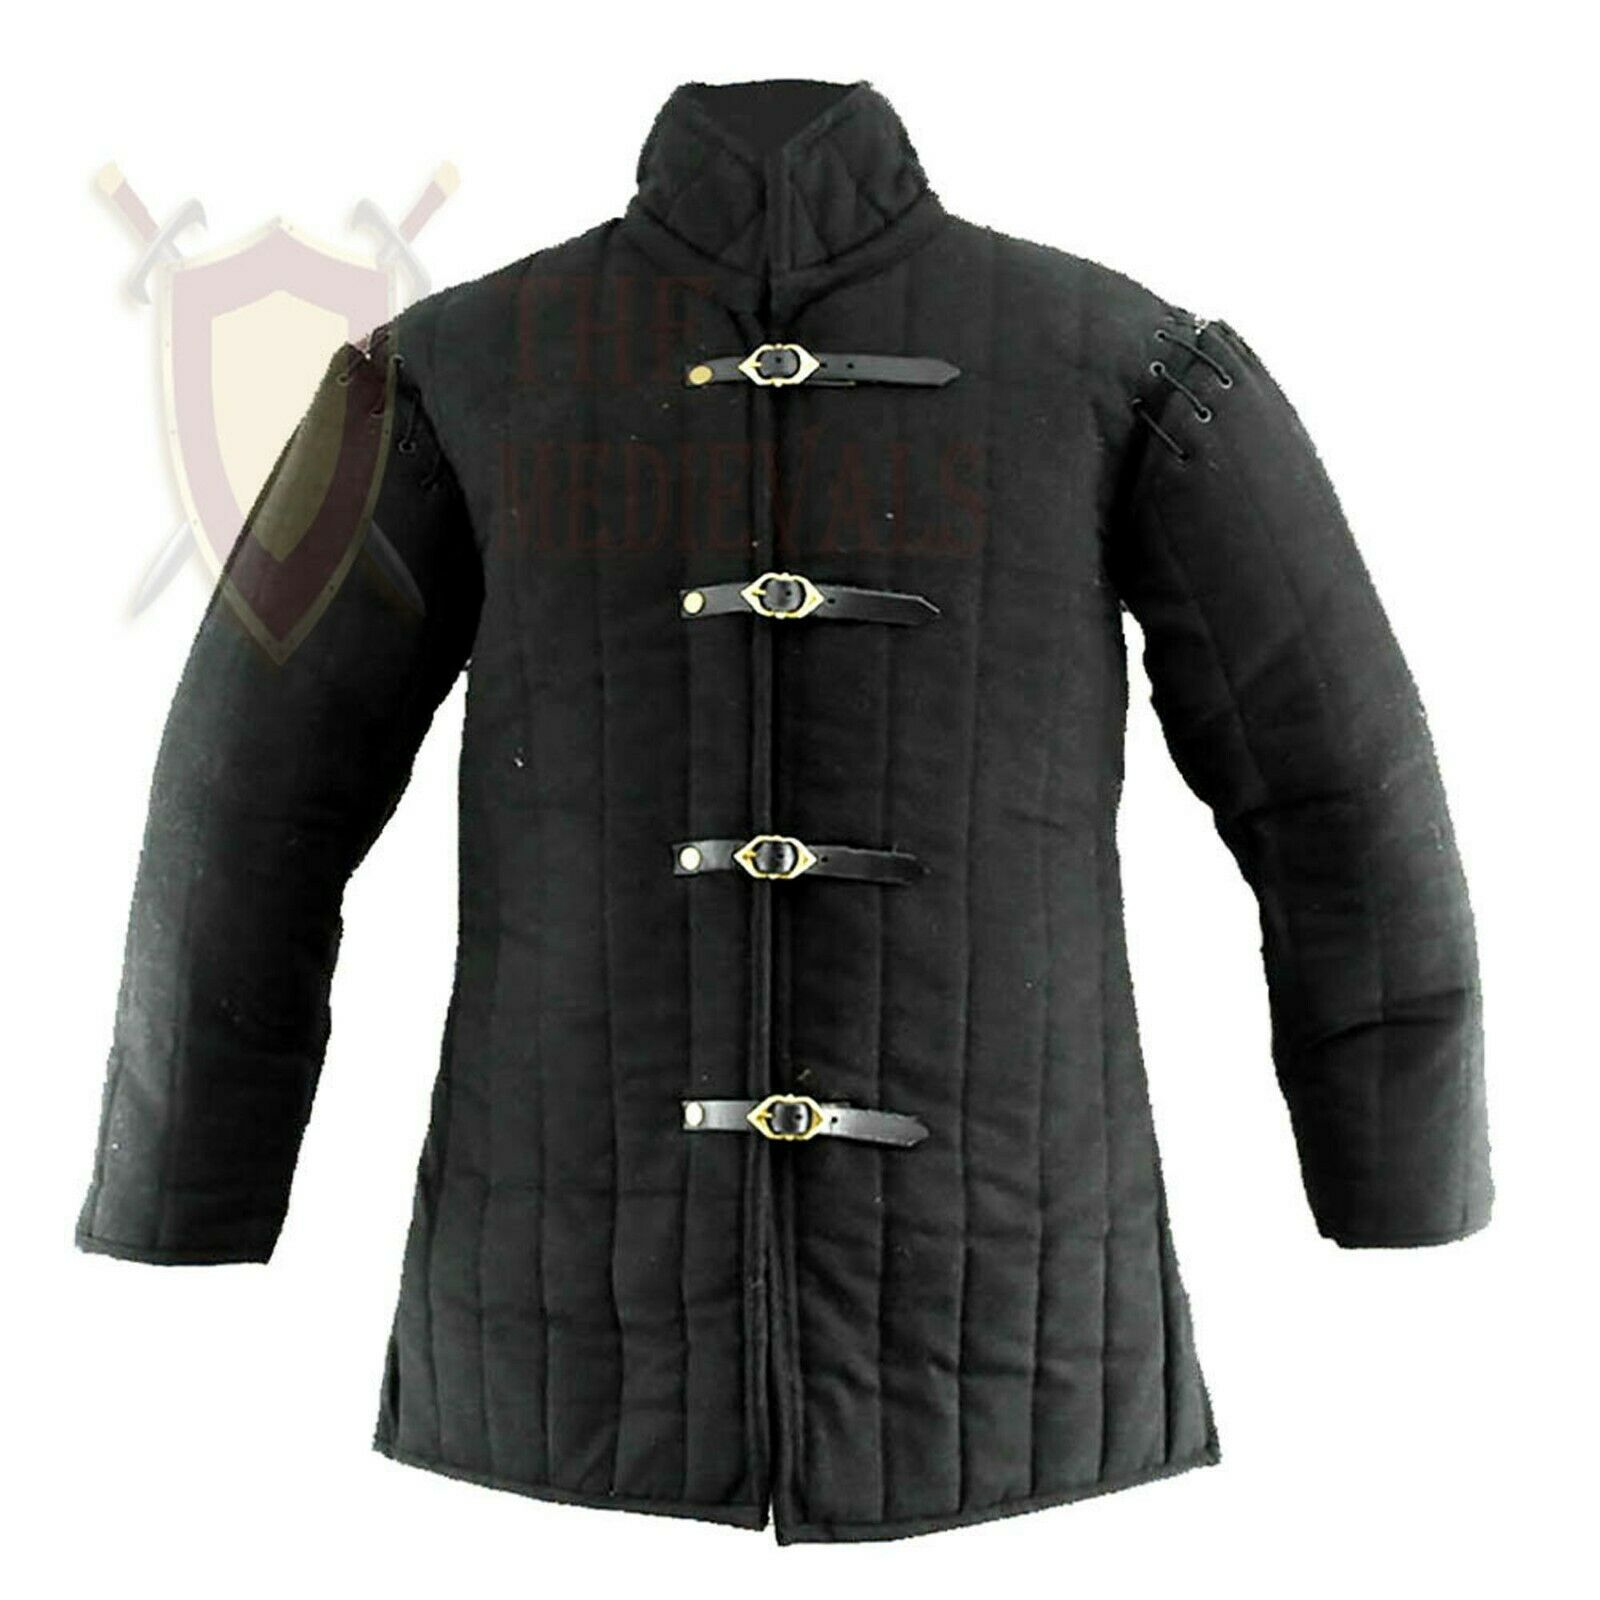 THE MEDIEVALS Gambeson Coat Aketon Thick Padded Full Sleeve Jacket Armor Costume